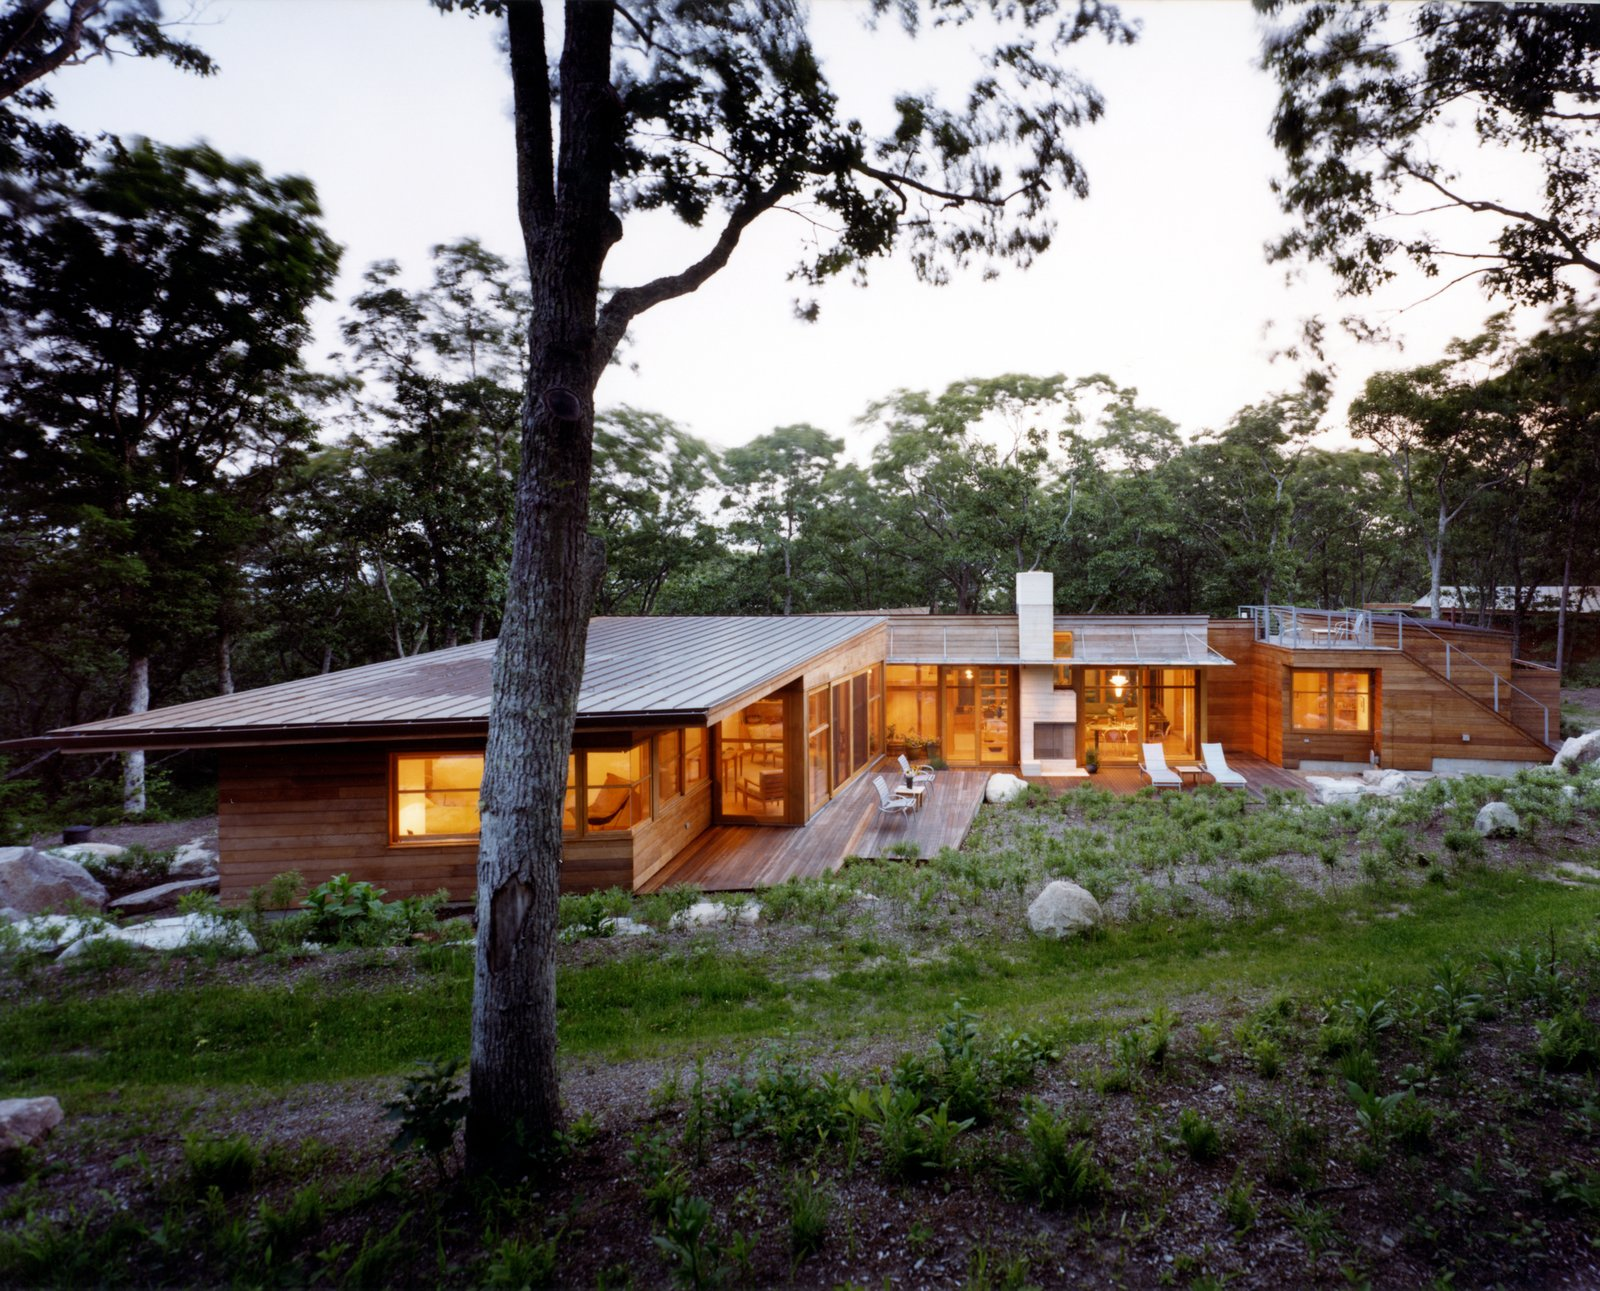 Outdoor, Small, Boulders, Shrubs, Wire, Wood, Grass, Back Yard, Metal, Trees, and Hardscapes  Outdoor Boulders Trees Metal Photos from Chilmark House